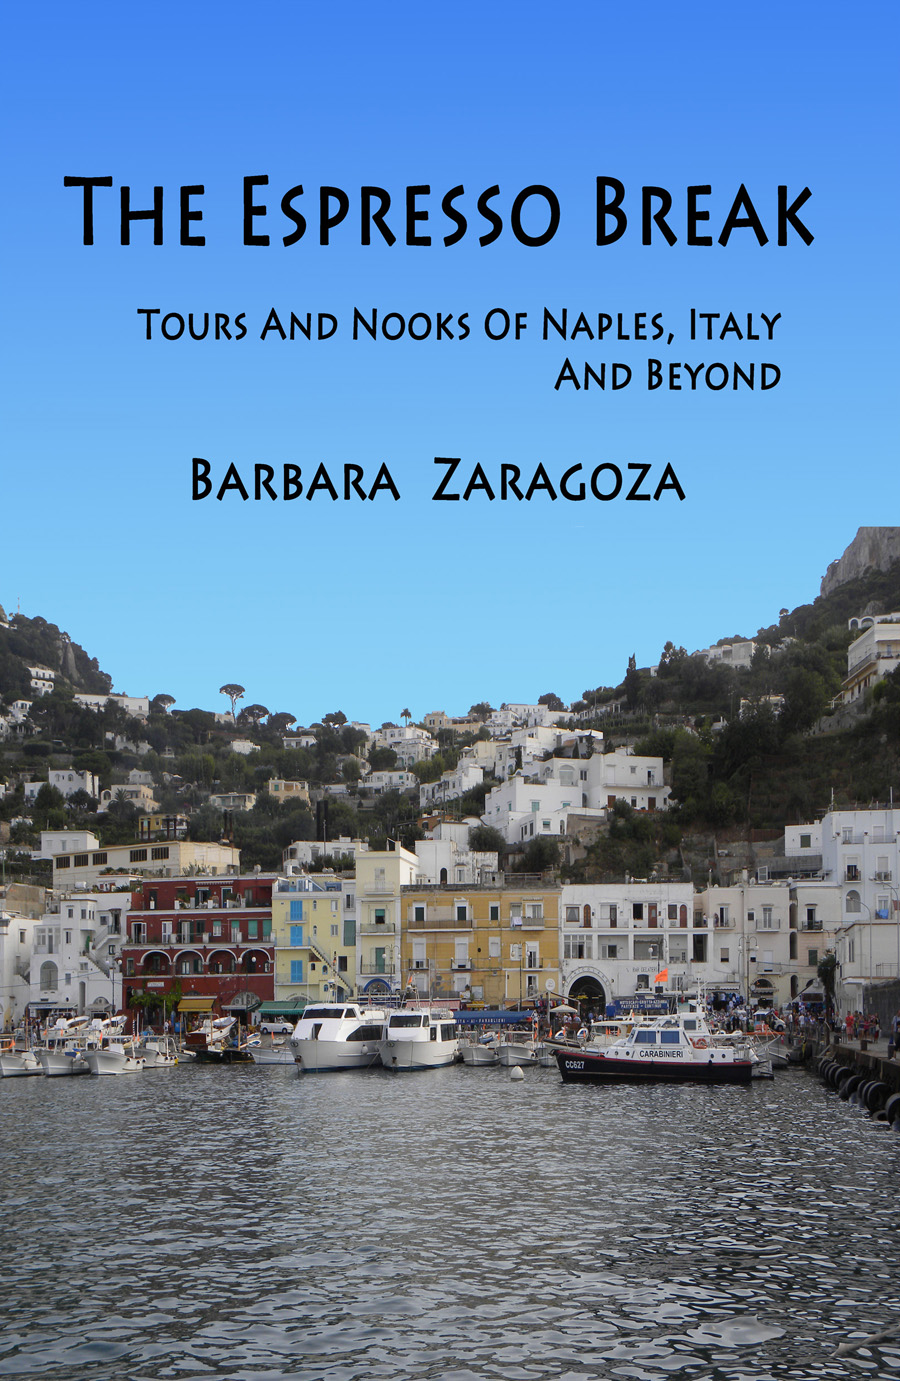 barbara-zaragoza-author-espresso-break-interview-living-napoli